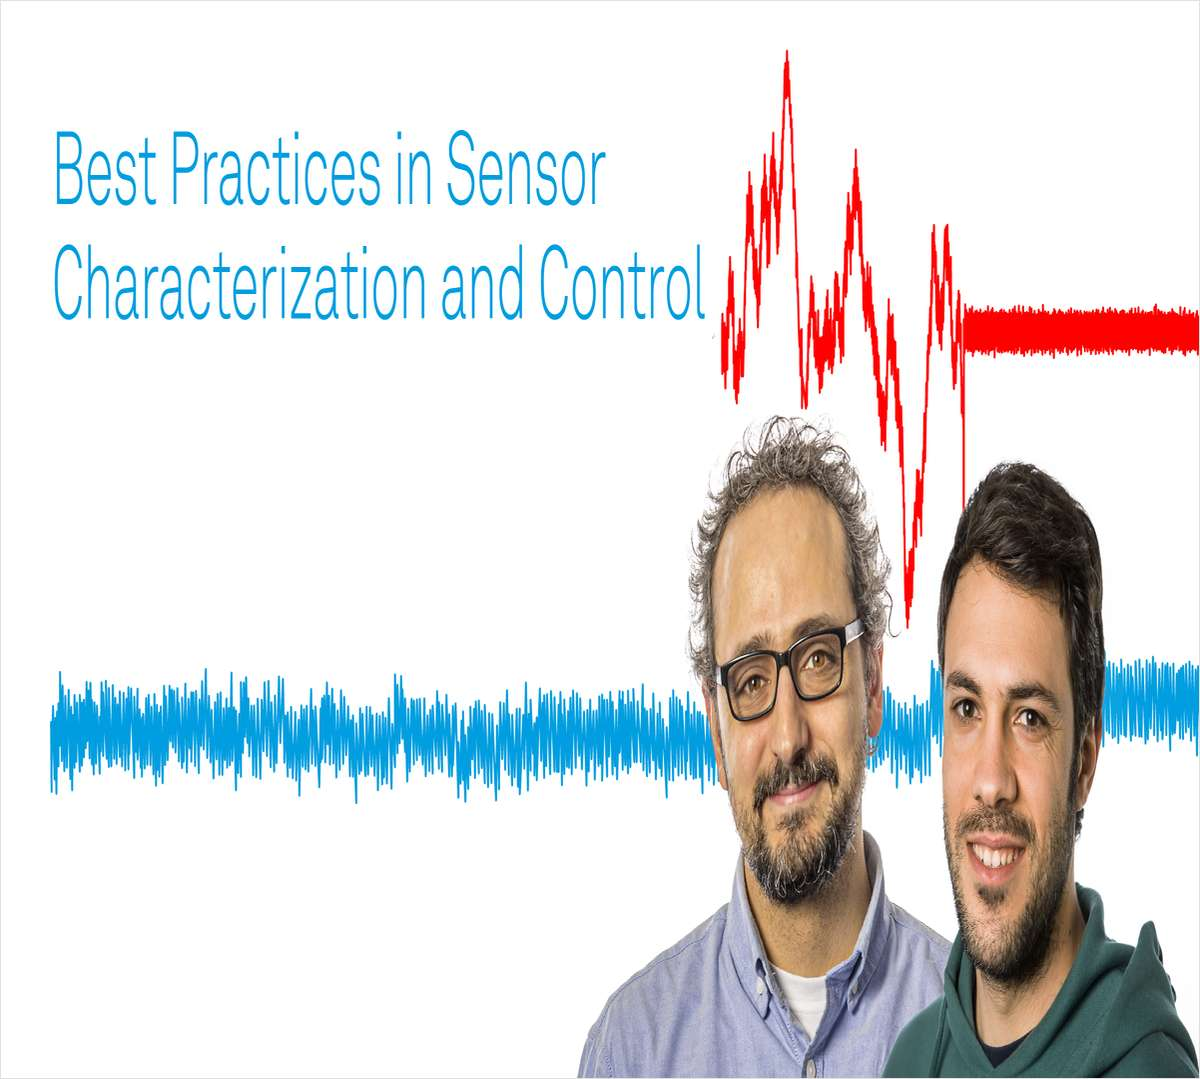 Best Practices in Sensor Characterization and Control